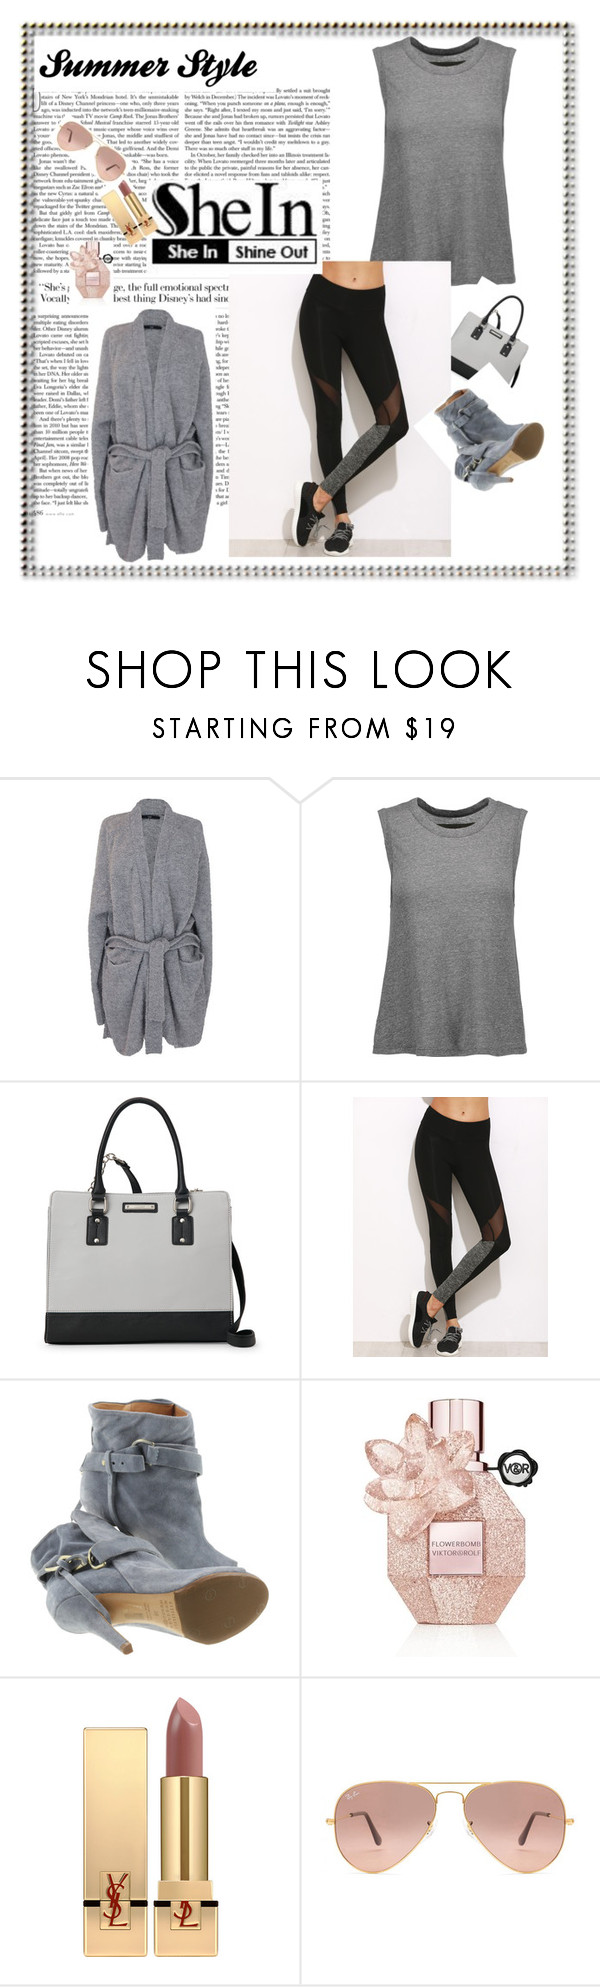 """""""liwuir"""" by melisa-484 ❤ liked on Polyvore featuring TIBI, Enza Costa, Nine West, Maison Margiela, Viktor & Rolf, Yves Saint Laurent and Ray-Ban"""